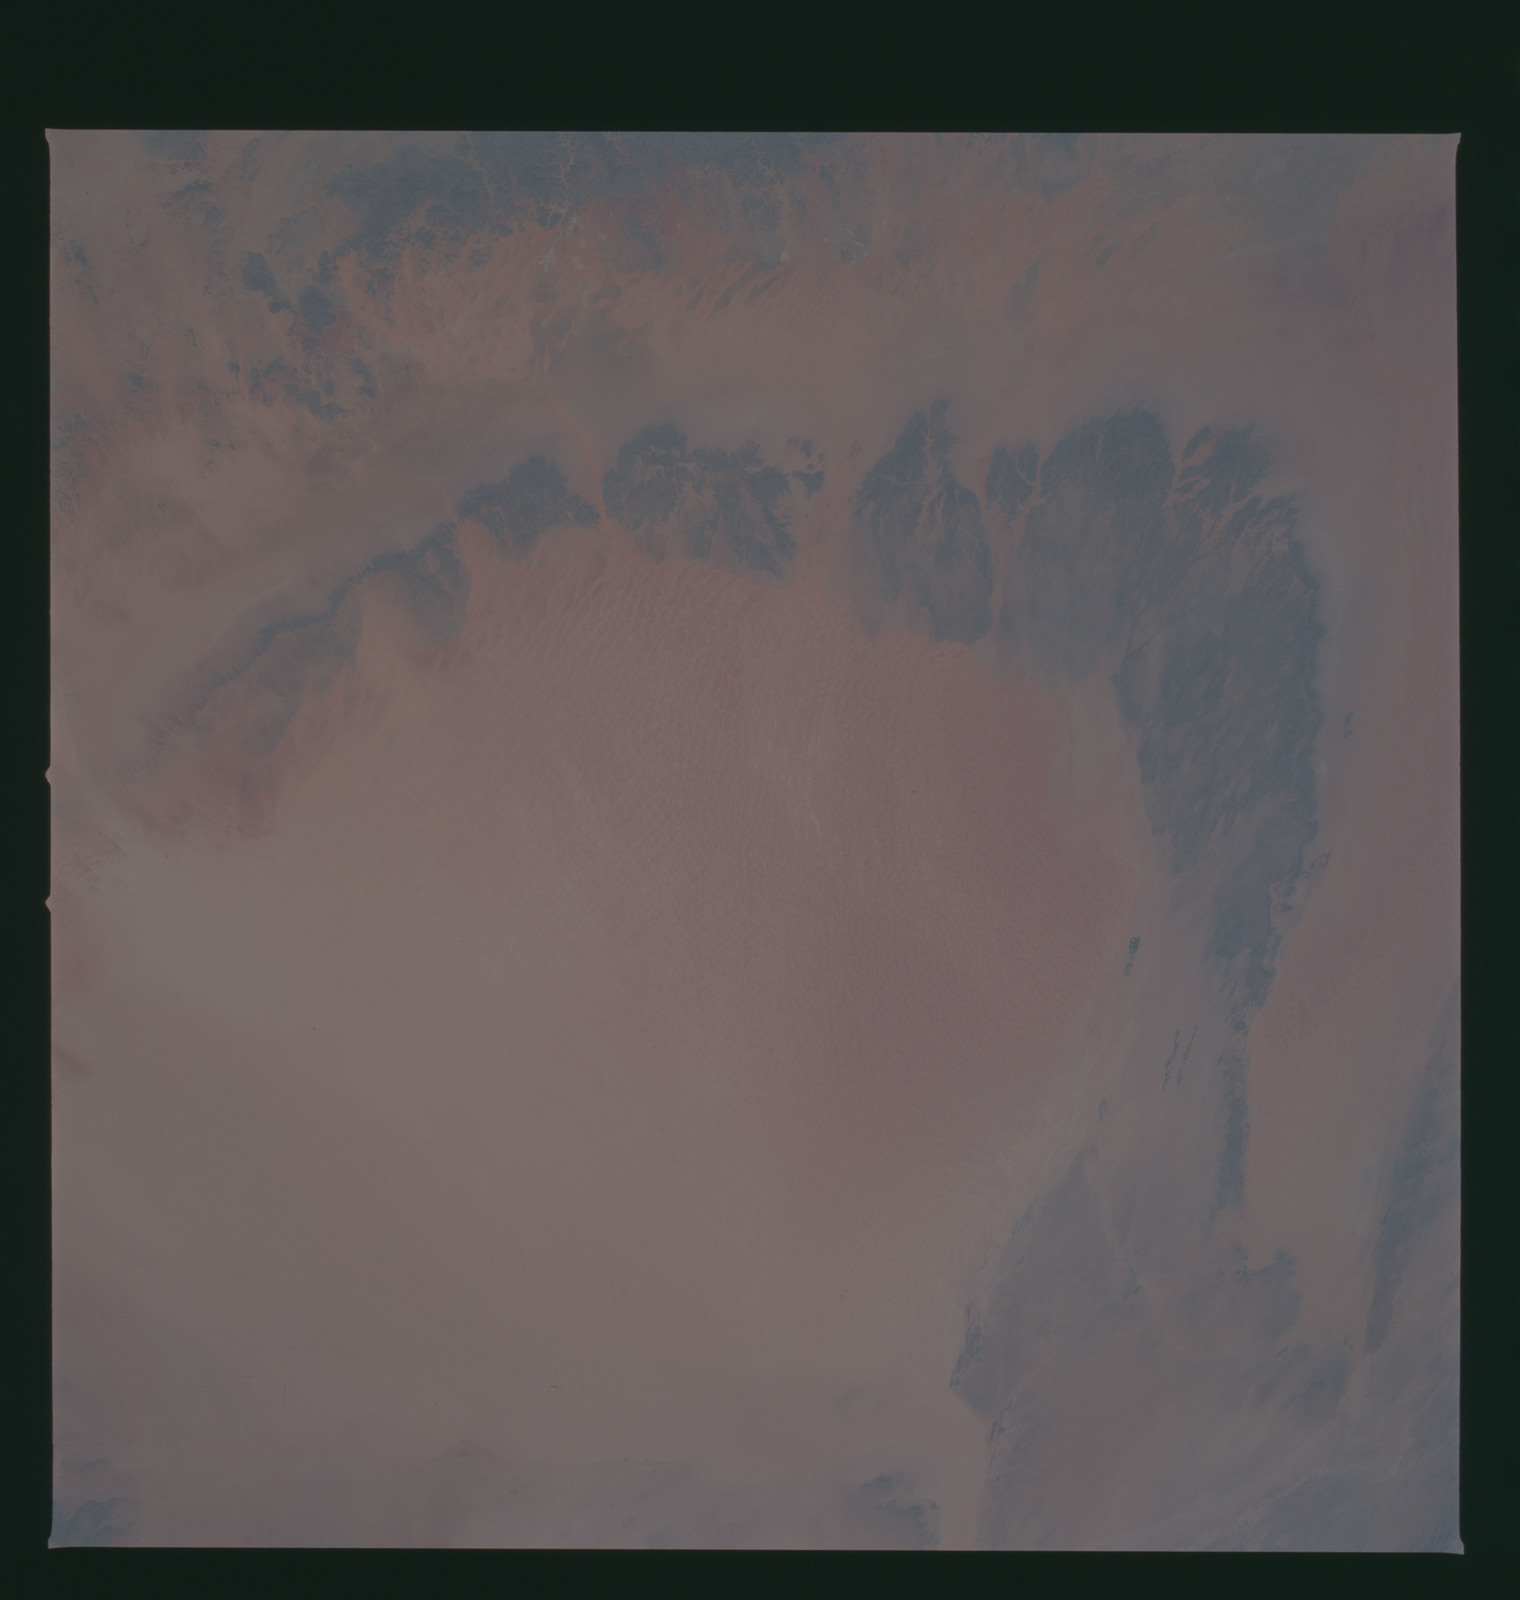 S37-94-092 - STS-037 - Earth observations taken from OV-104 during STS-37 mission